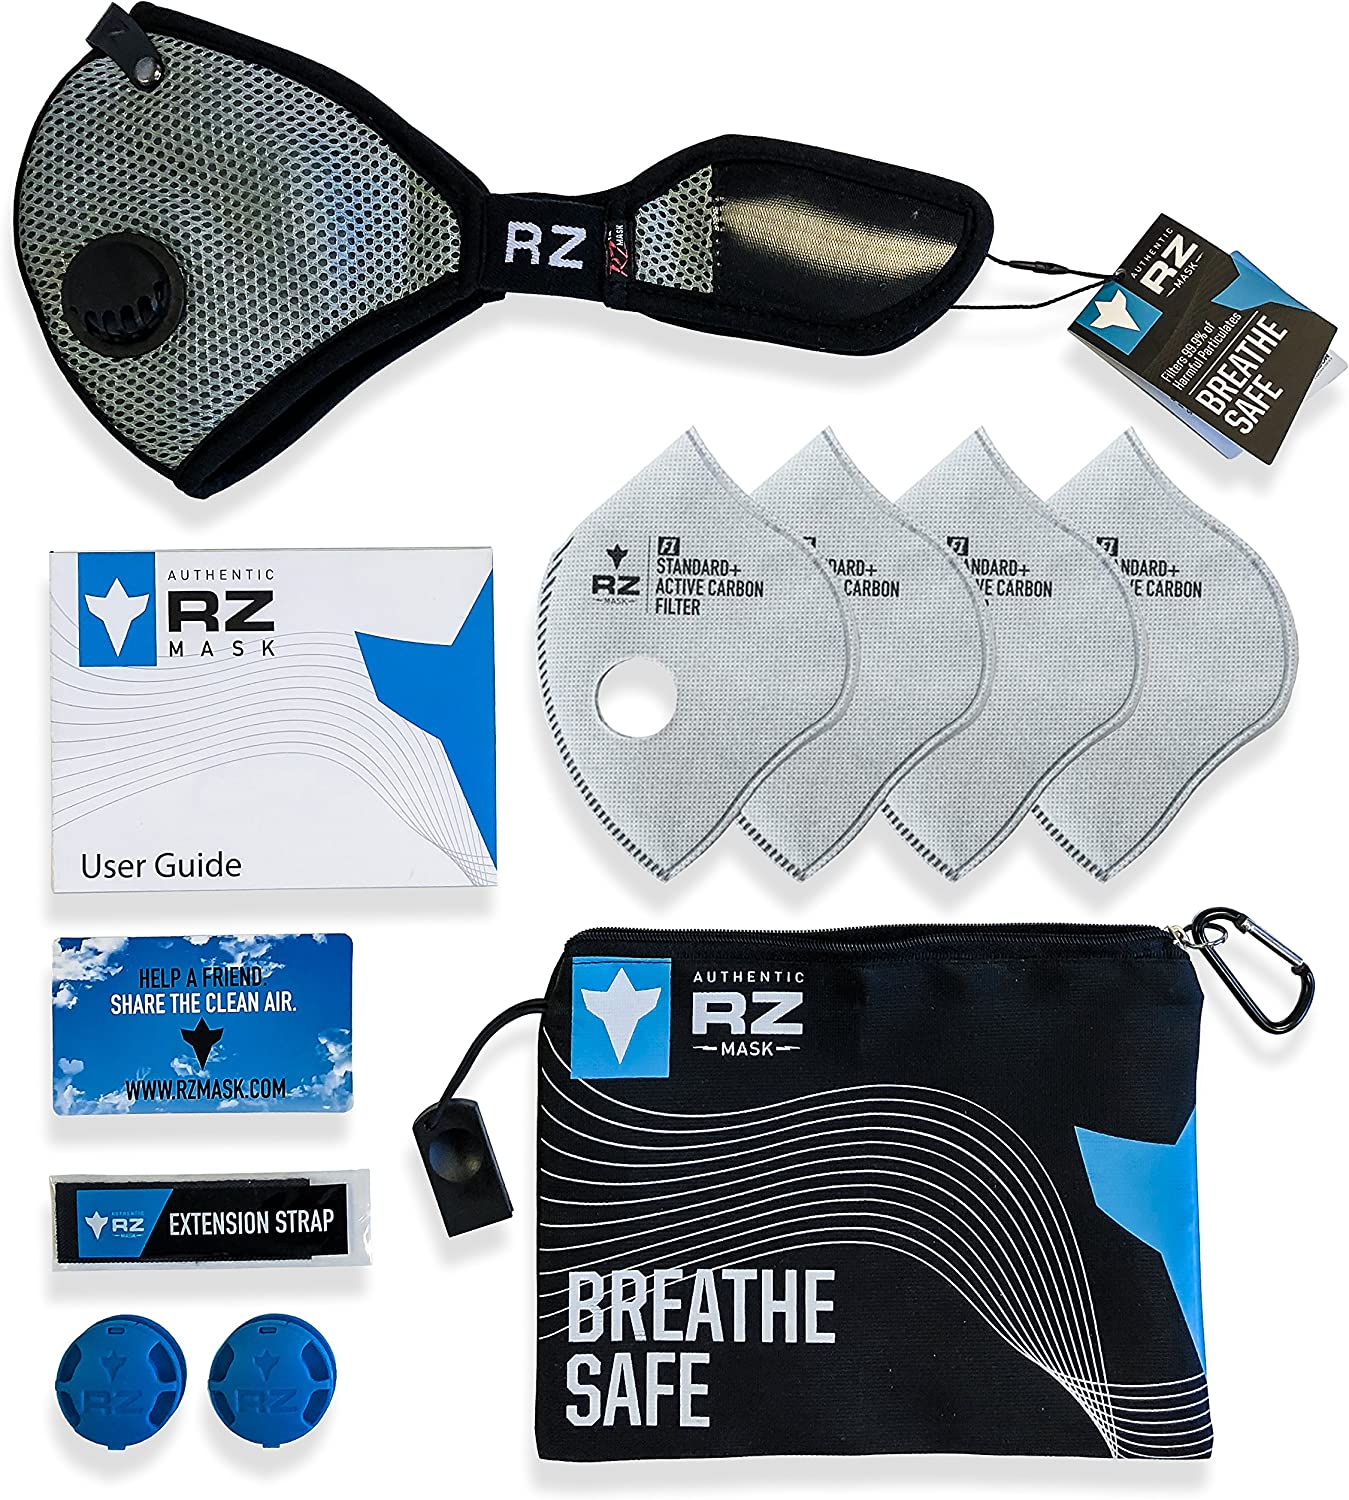 RZ free Mask M2 Bundle Pack Large Pink Seasonal Wrap Introduction Home Woodworking for Improv